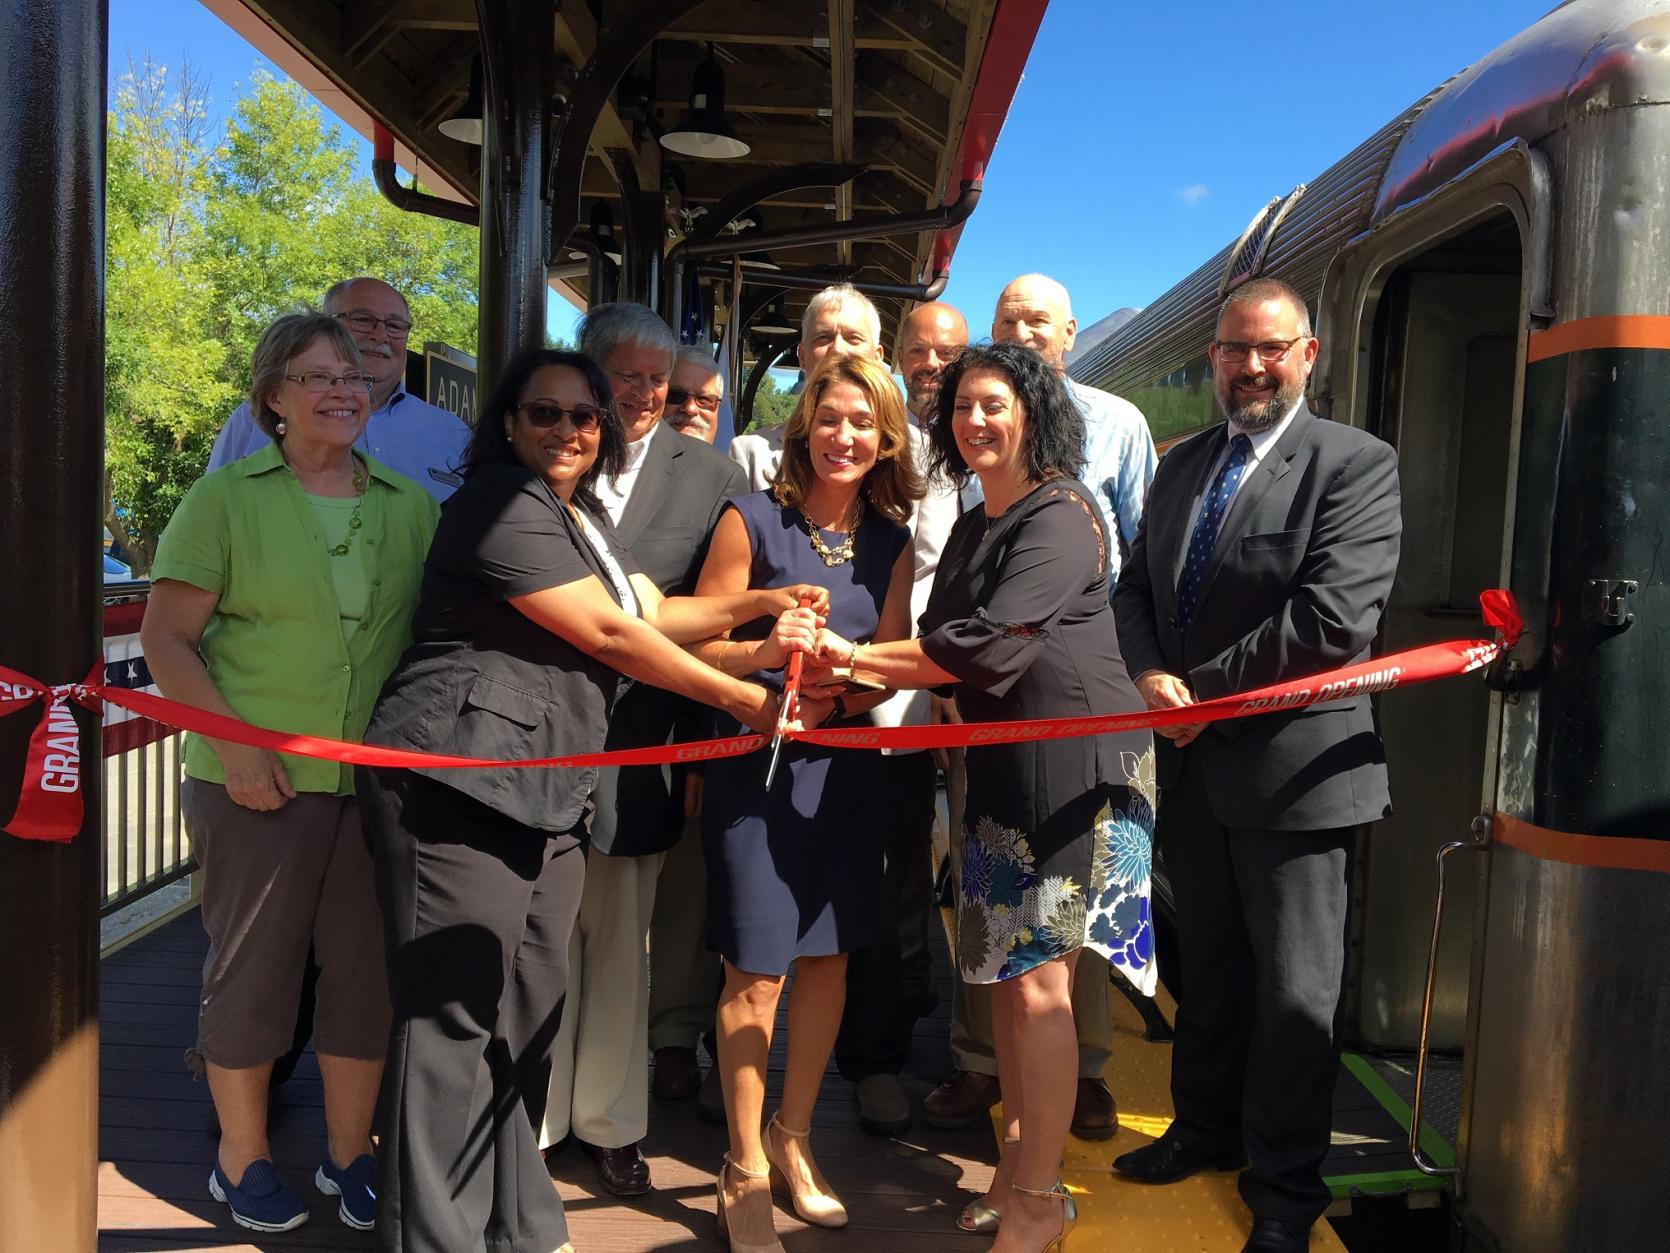 Lt. Governor Karyn Polito joined local officials from Adams and North Adams for a ribbon cutting to celebrate the extension of the Adams Branch Rail Line.